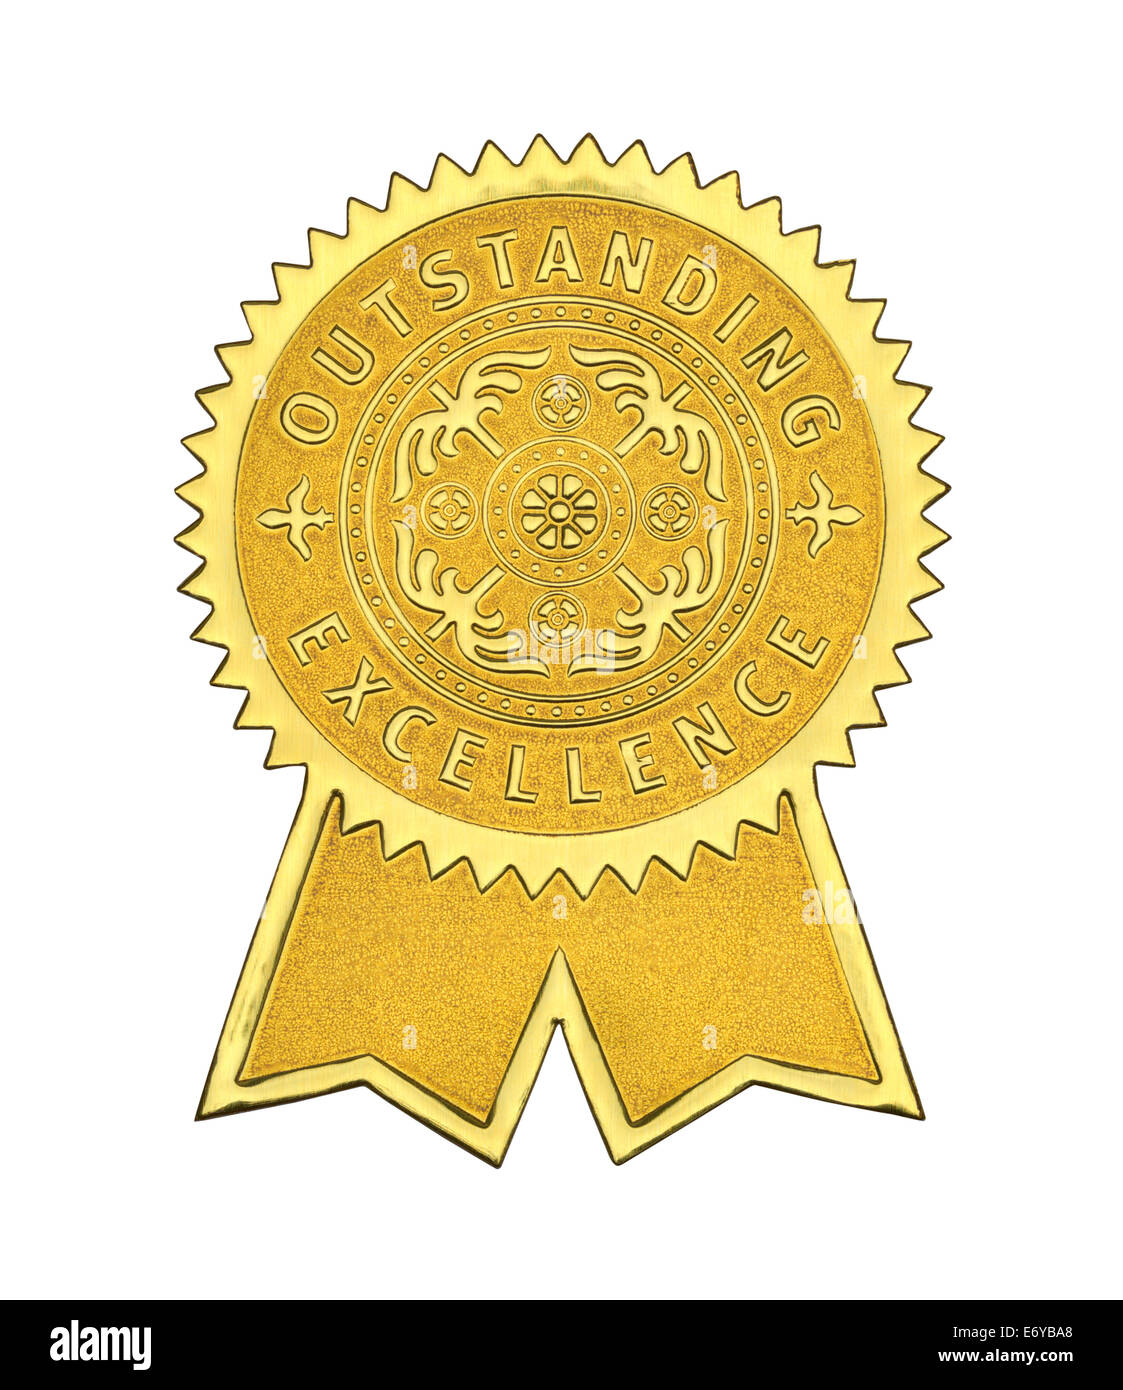 Gold Excellence Seal With Ribbons Isolated on White Background. - Stock Image